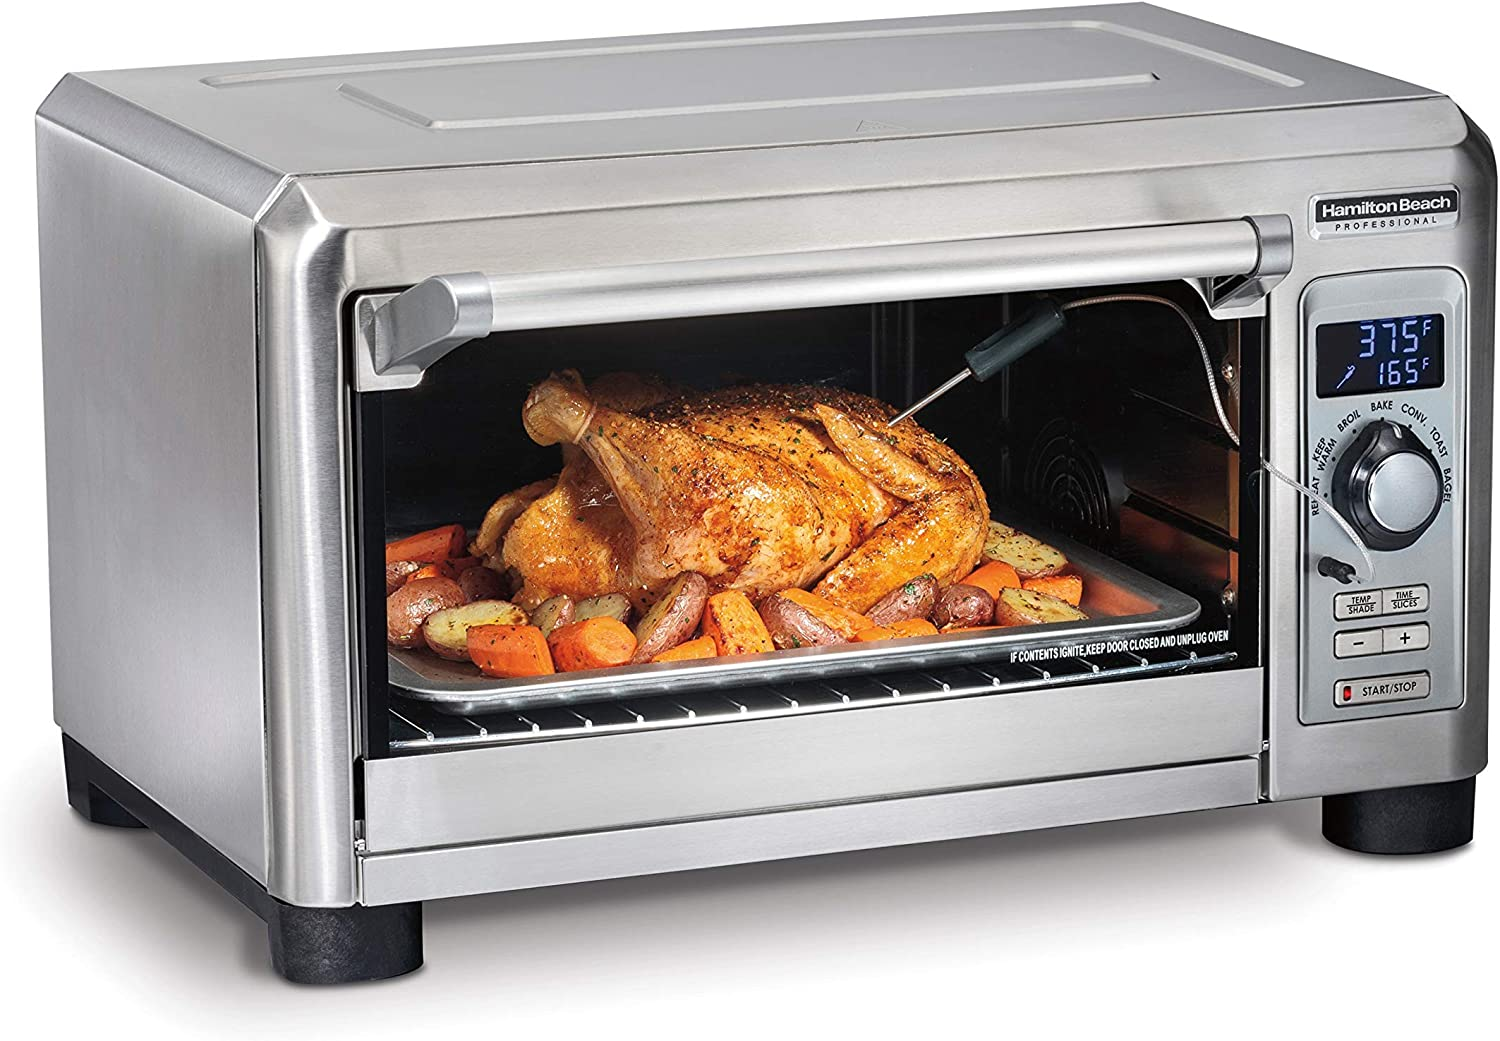 Hamilton Beach Professional Countertop Toaster Oven, Digital, Convection, Large 6-Slice, Temperature Probe, Stainless Steel (31240), (Renewed)